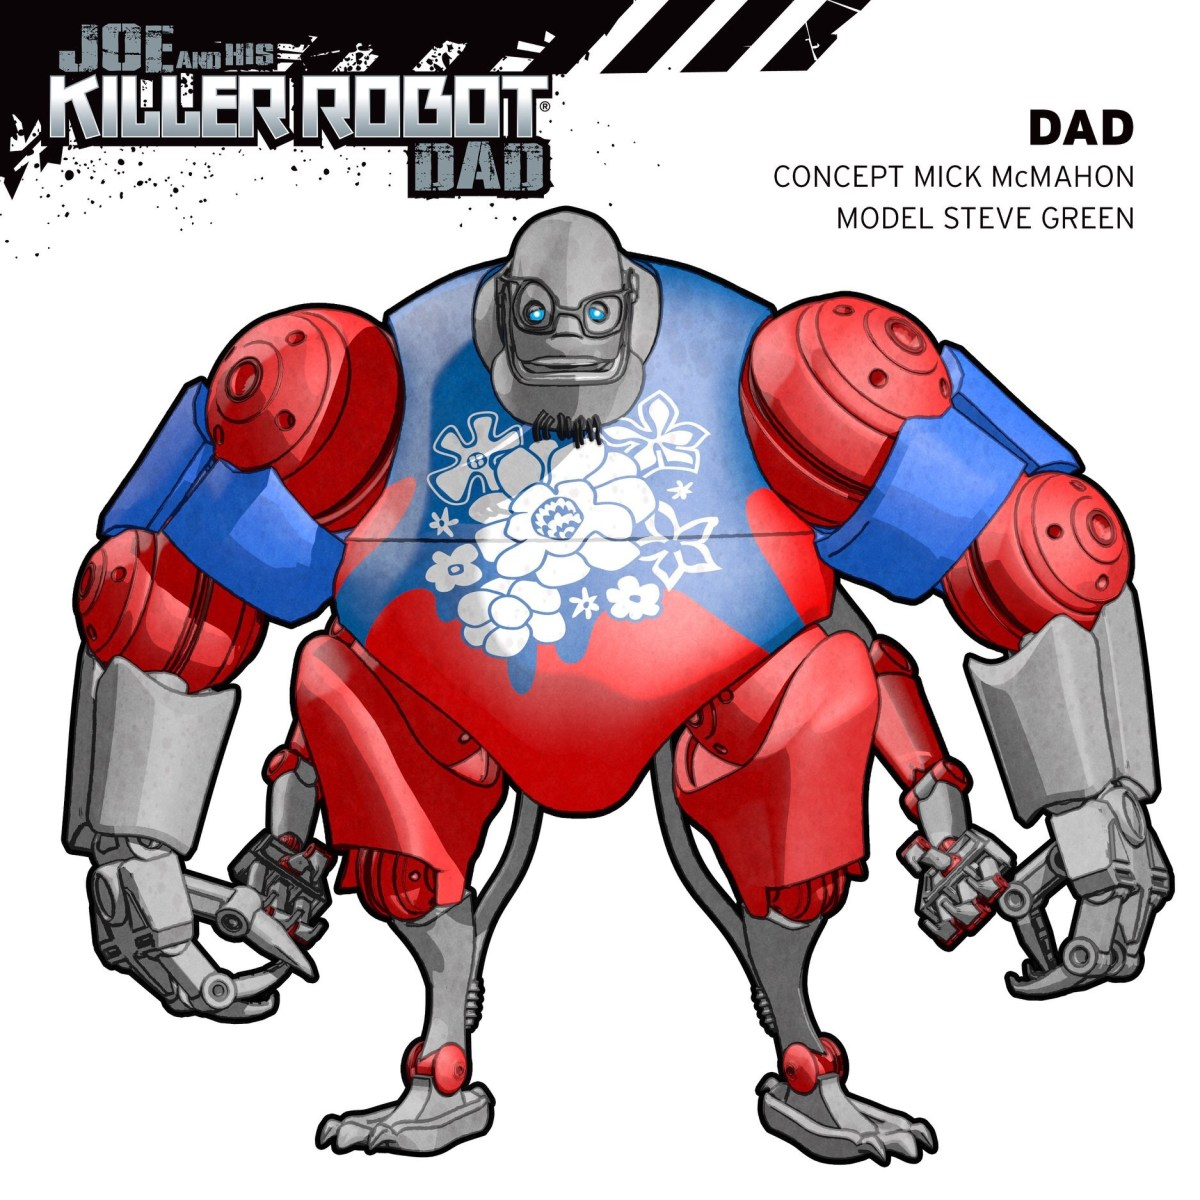 """Joe and his Killer Robot Dad - """"Dad"""" concept by Mick McMahon, digital model by Steve Green. A peace-loving dude at heart, recent events have not been kind to Dad, but he won't let his current predicament stop him looking out for Joe!"""